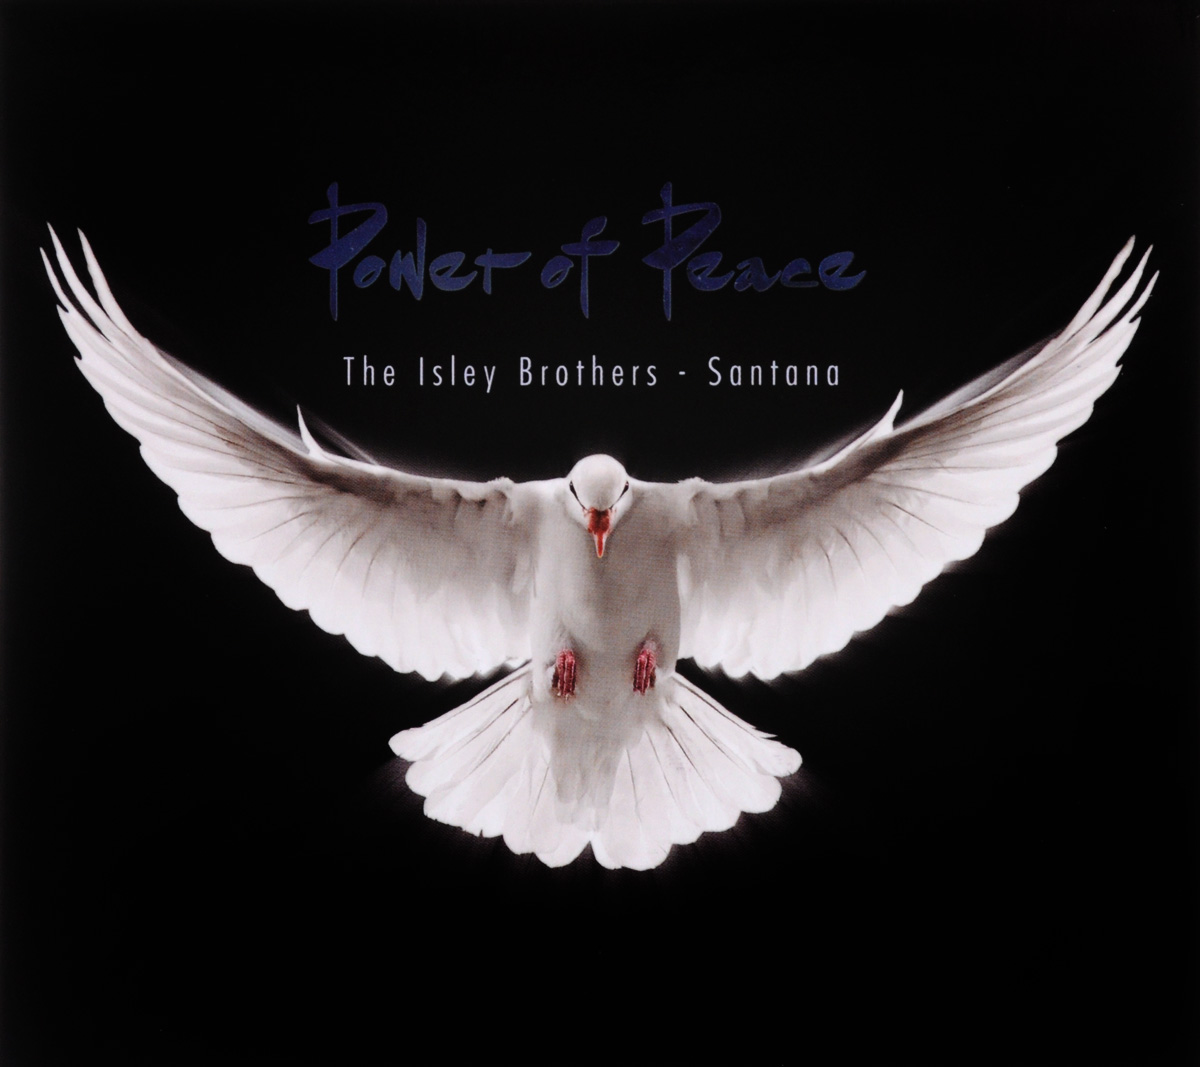 Карлос Сантана,The Isley Brothers The Isley Brothers & Santana. Power Of Peace карлос сантана santana ultimate santana